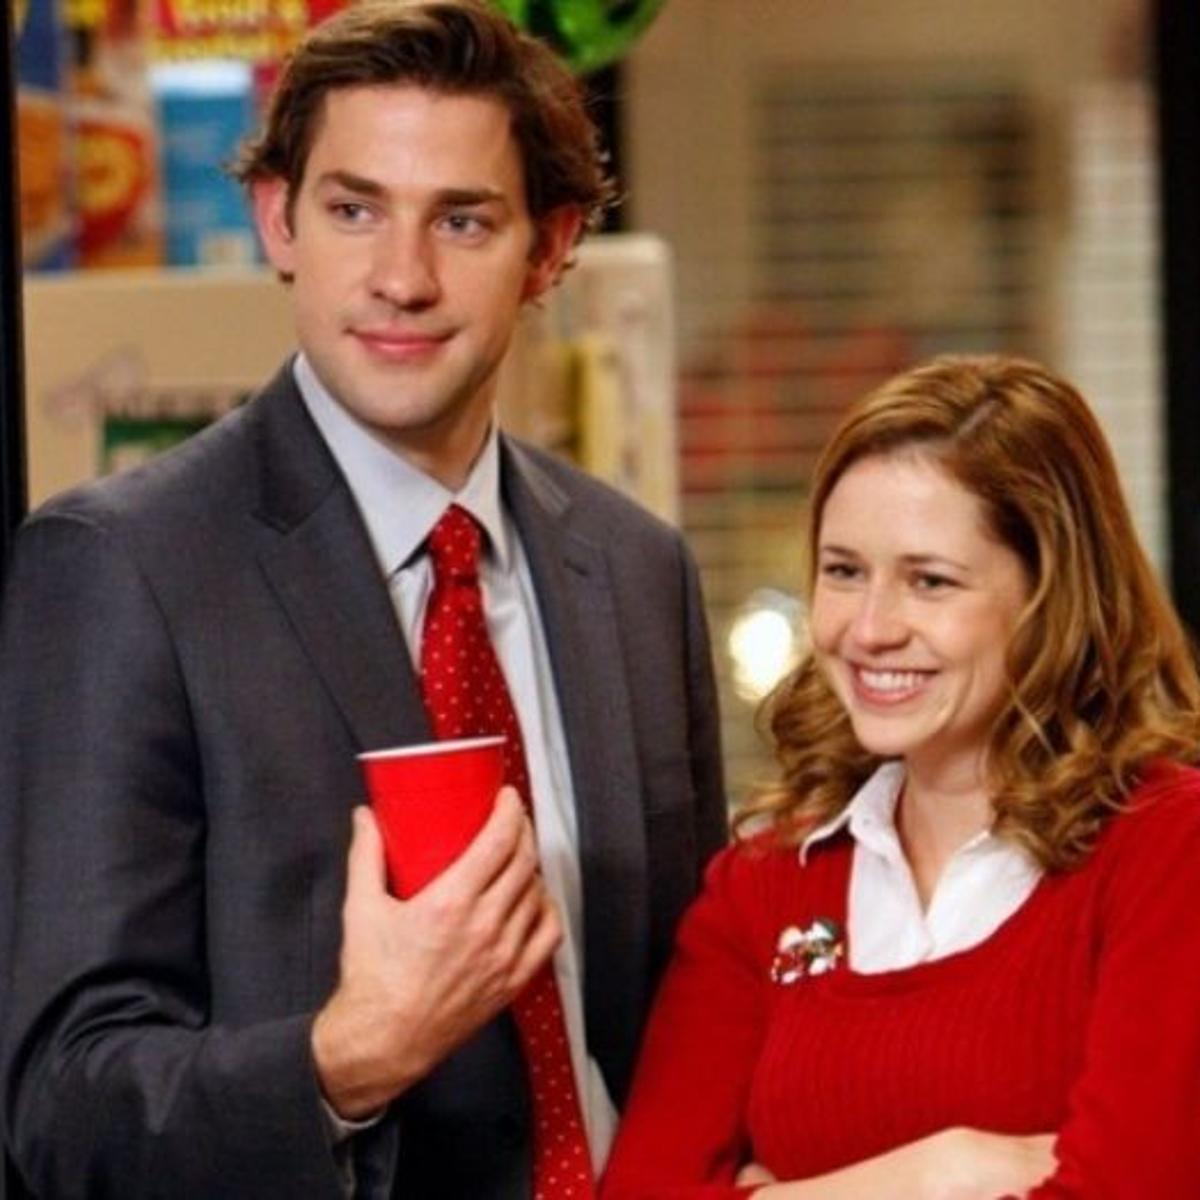 Jim And Pam Wedding Episode.The Office Recap Jim And Pam S Marriage Reaches Threat